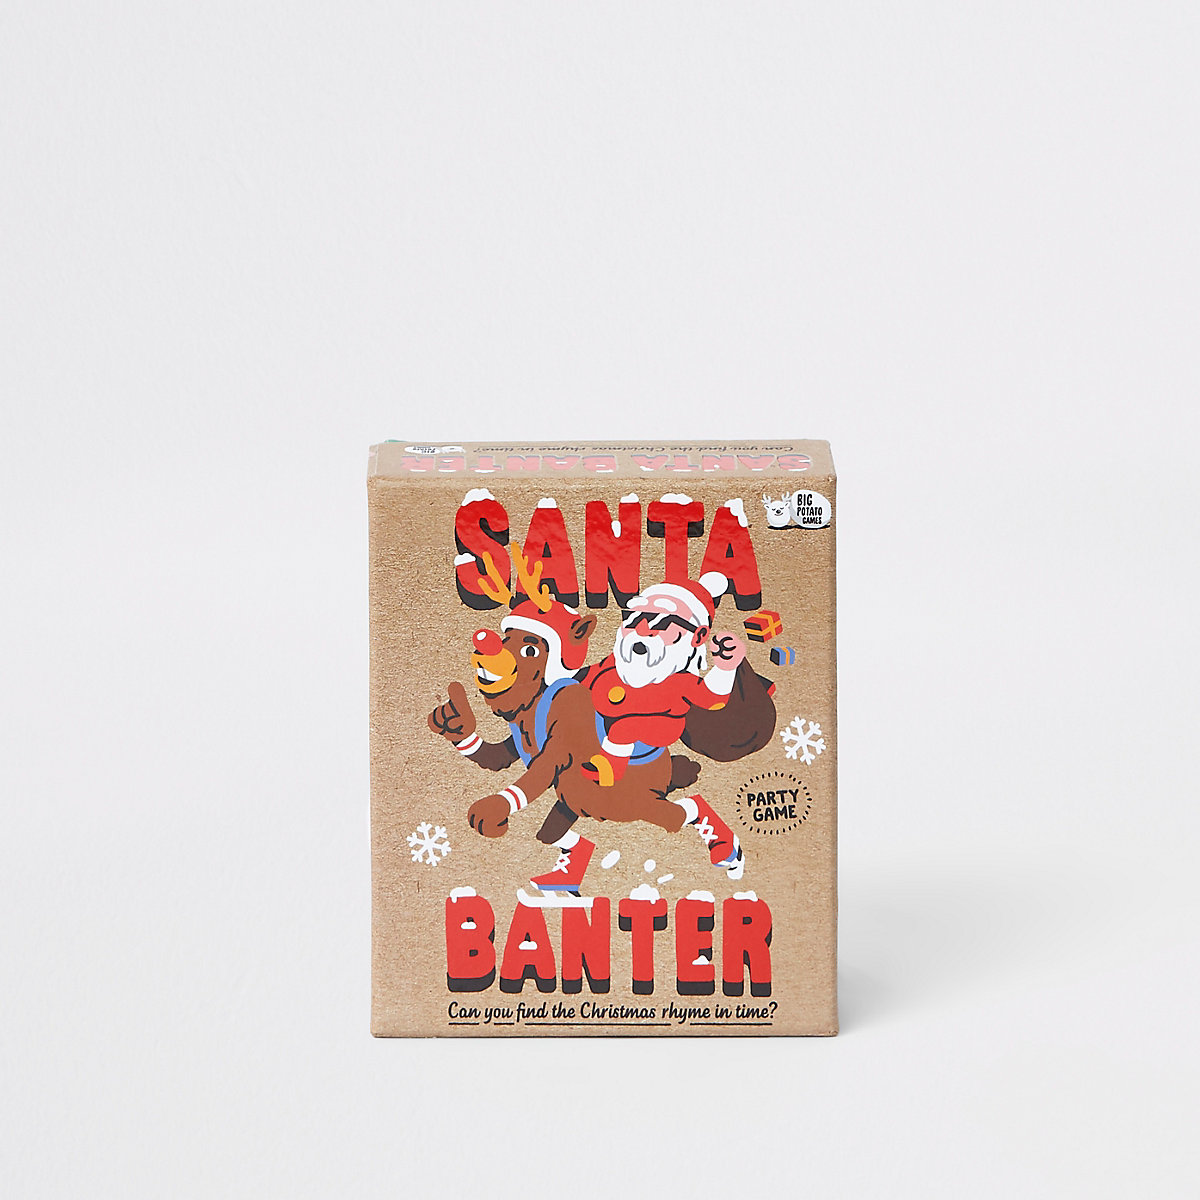 'Santa banter' party game